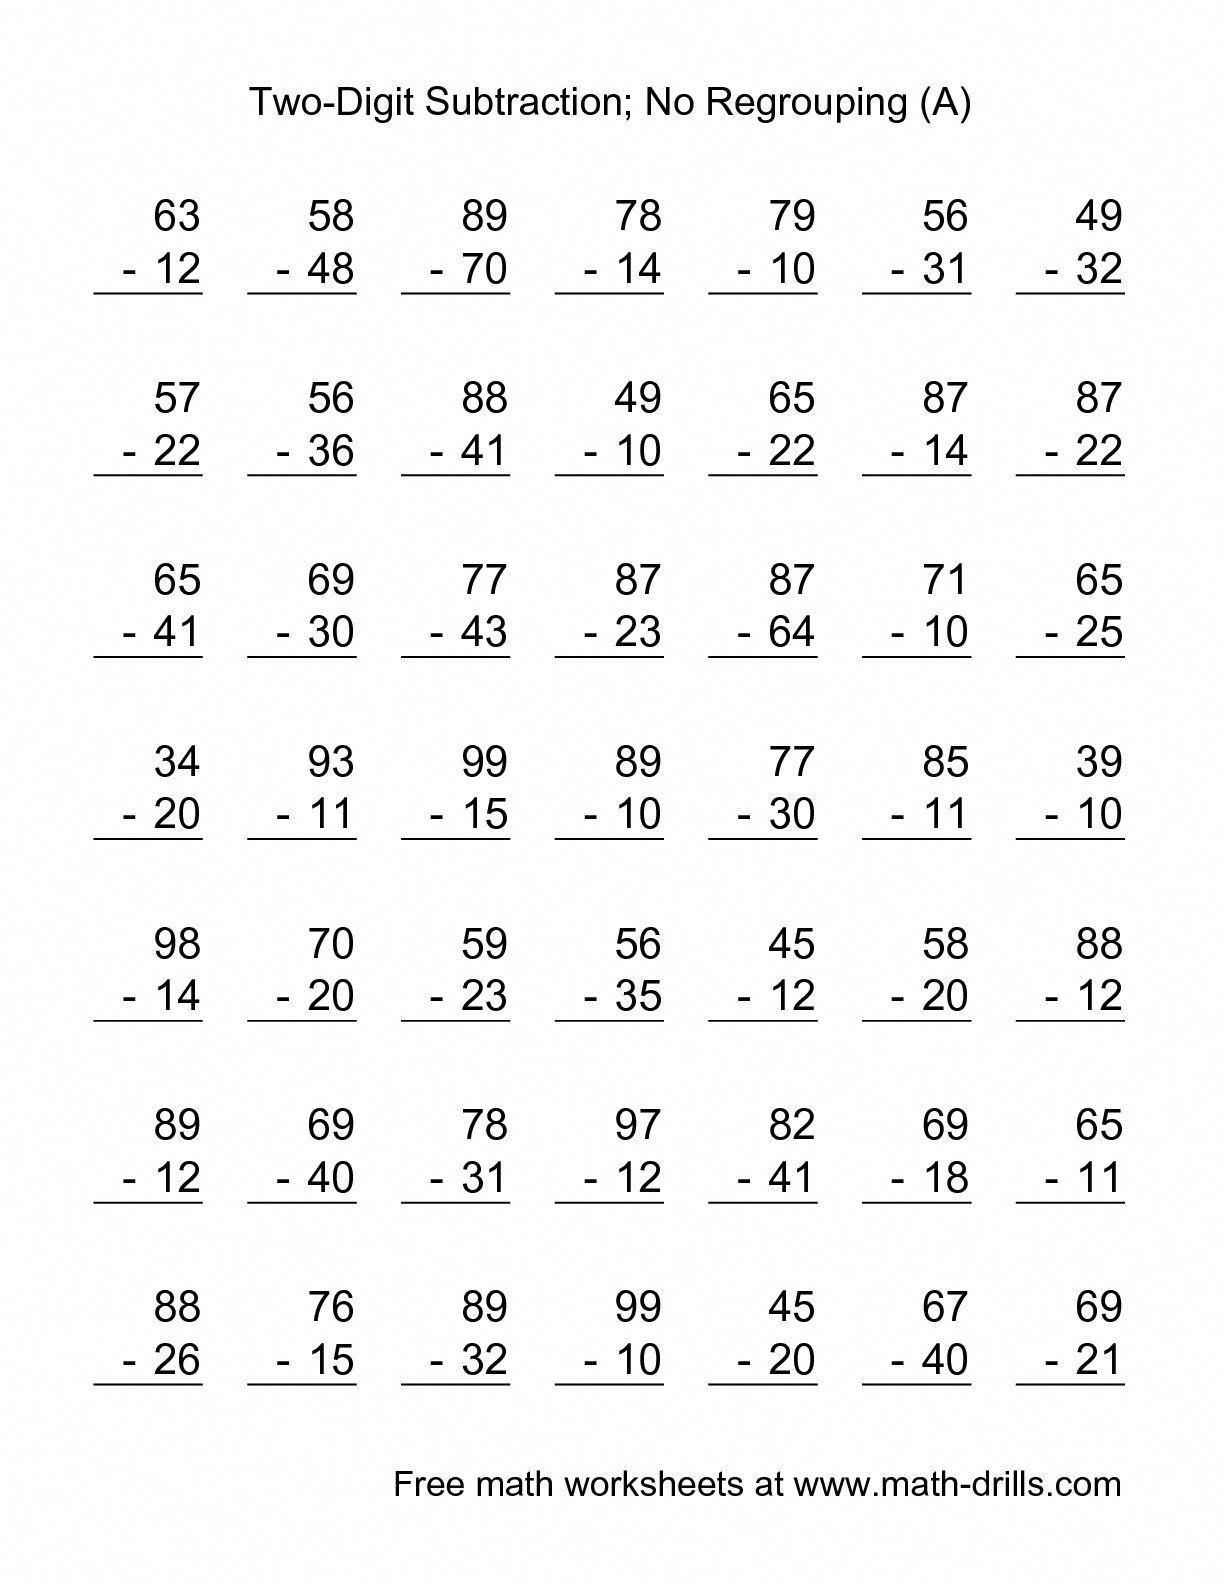 5 Two Digit Subtraction Subtraction Worksheets Without Regrouping The Two Di 2nd Grade Math Worksheets Easy Math Worksheets Addition And Subtraction Worksheets